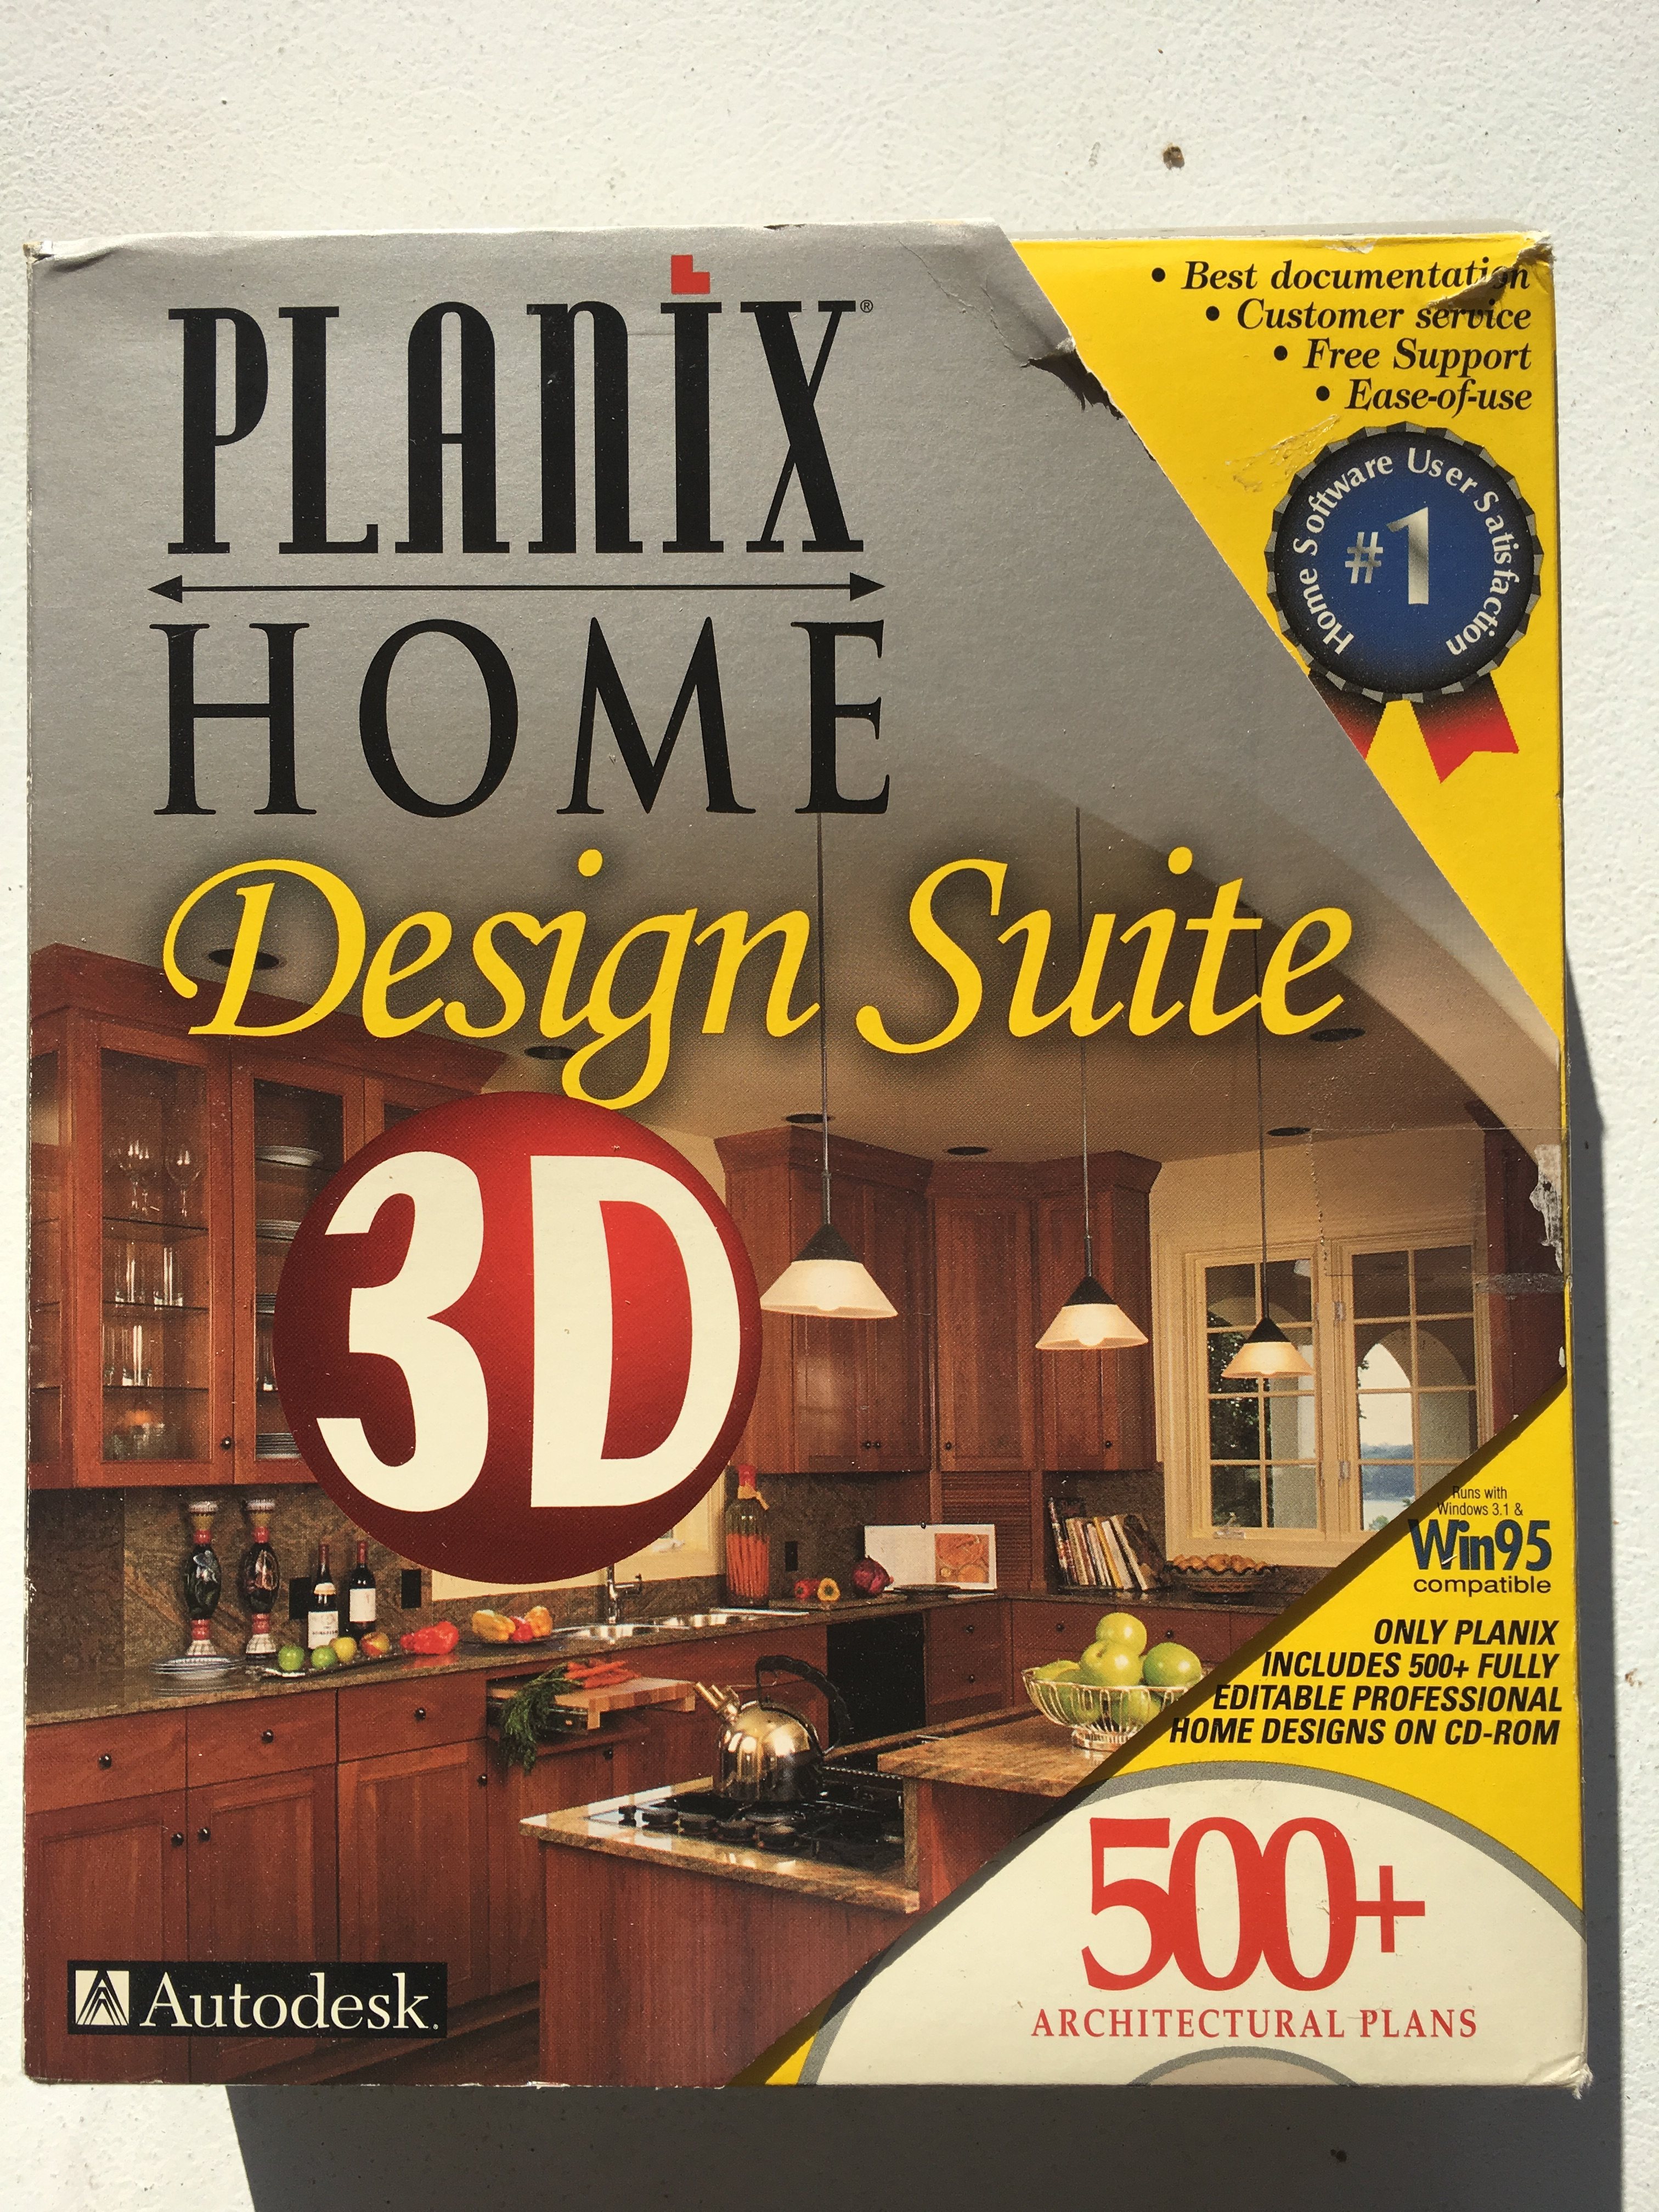 Autodesk planix home design